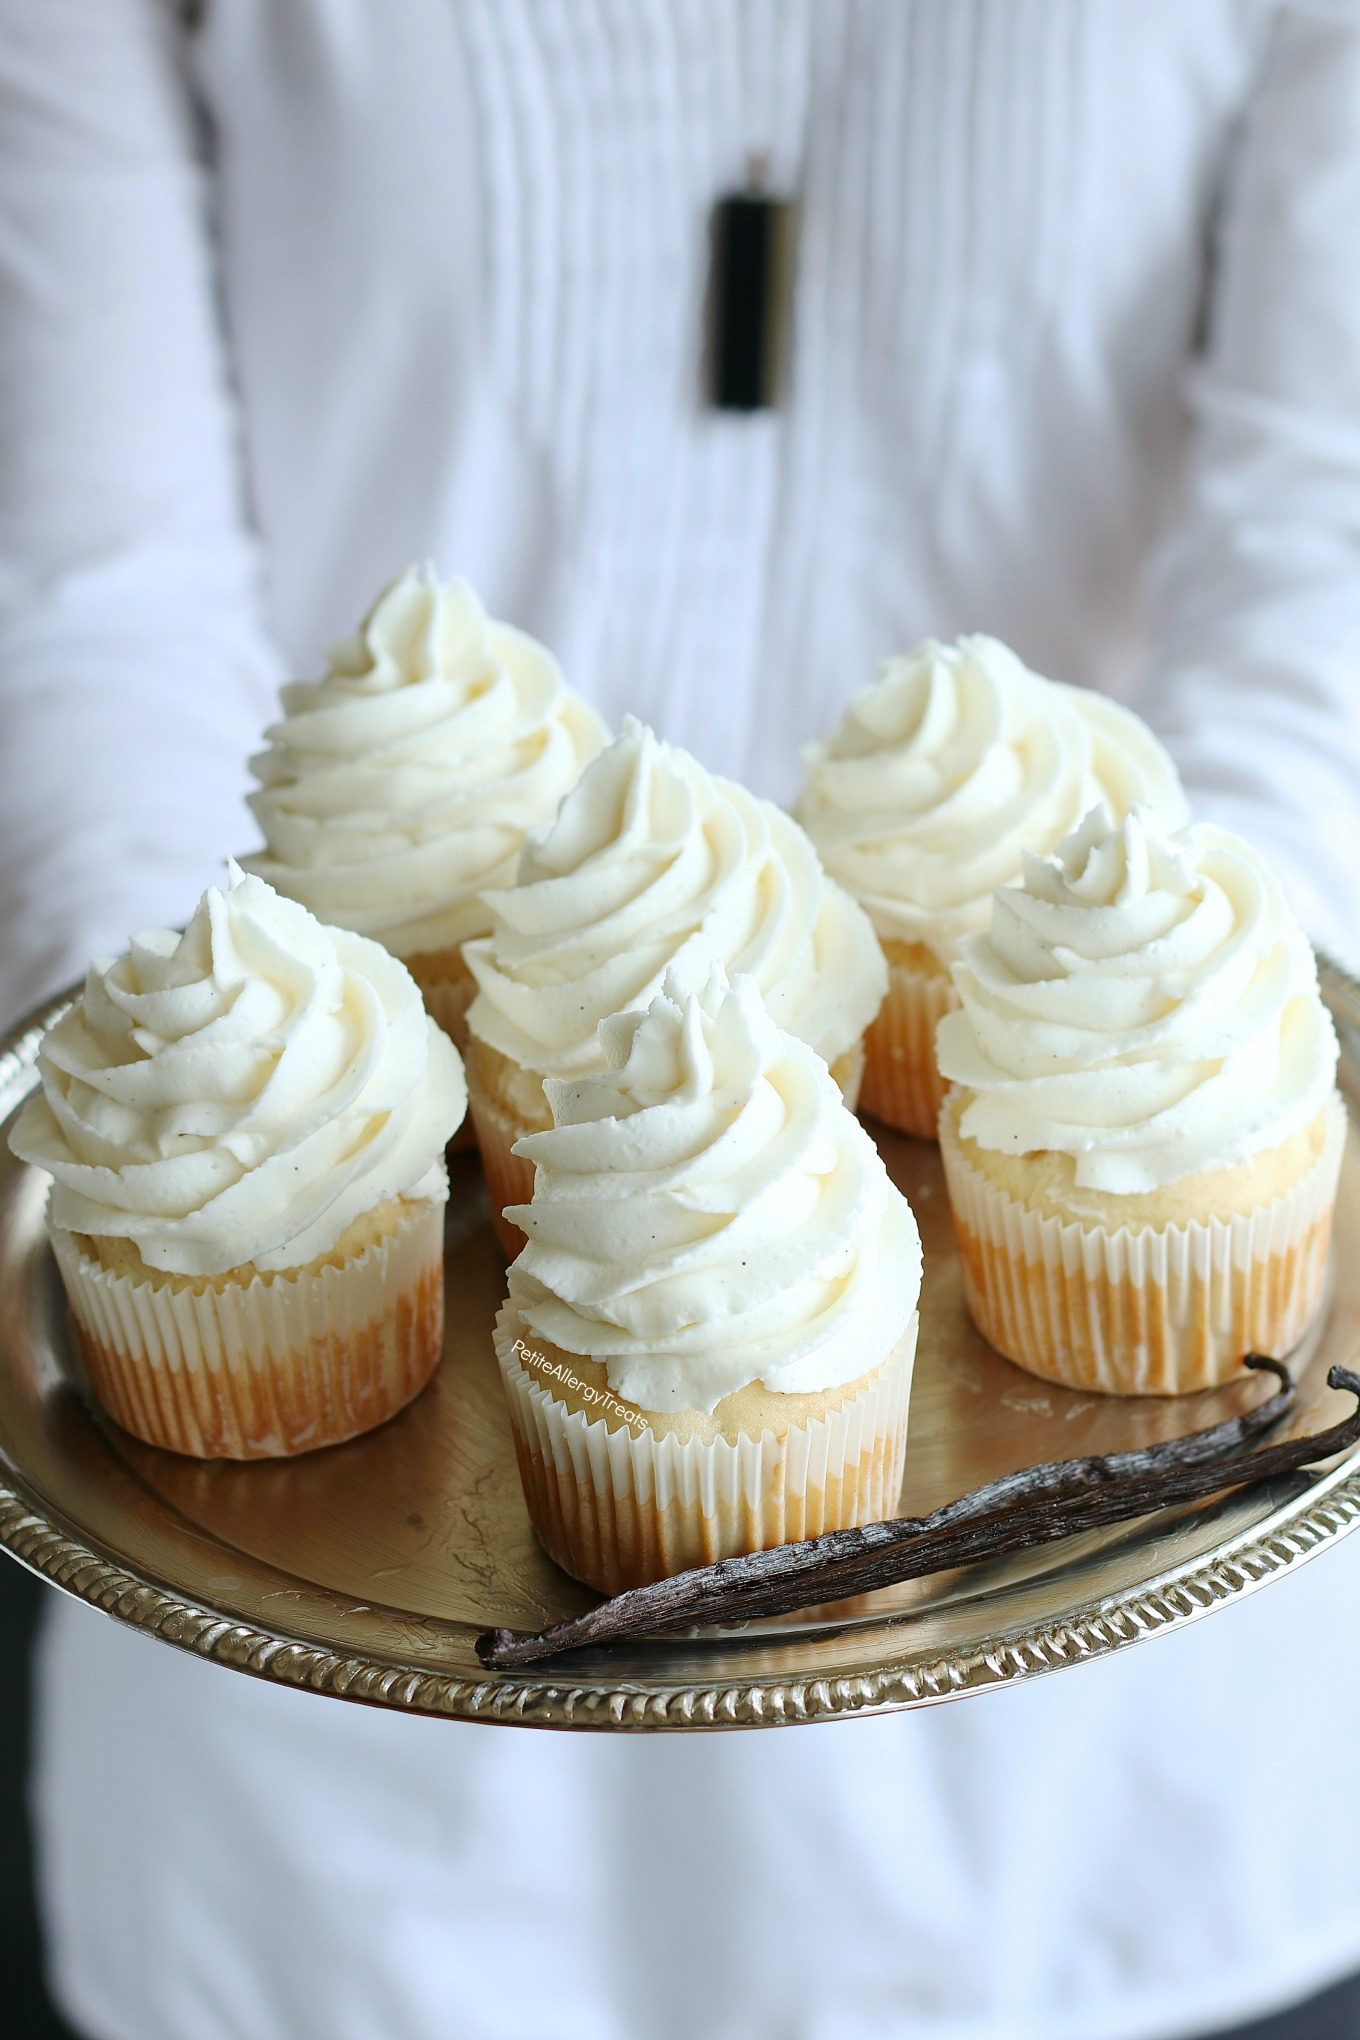 Gluten Free Vegan Vanilla Cupcakes Recipe (dairy free egg free)- Bakery style real vanilla bean cupcakes. Food Allergy friendly. Top 8 Free & Allergy Amulet.